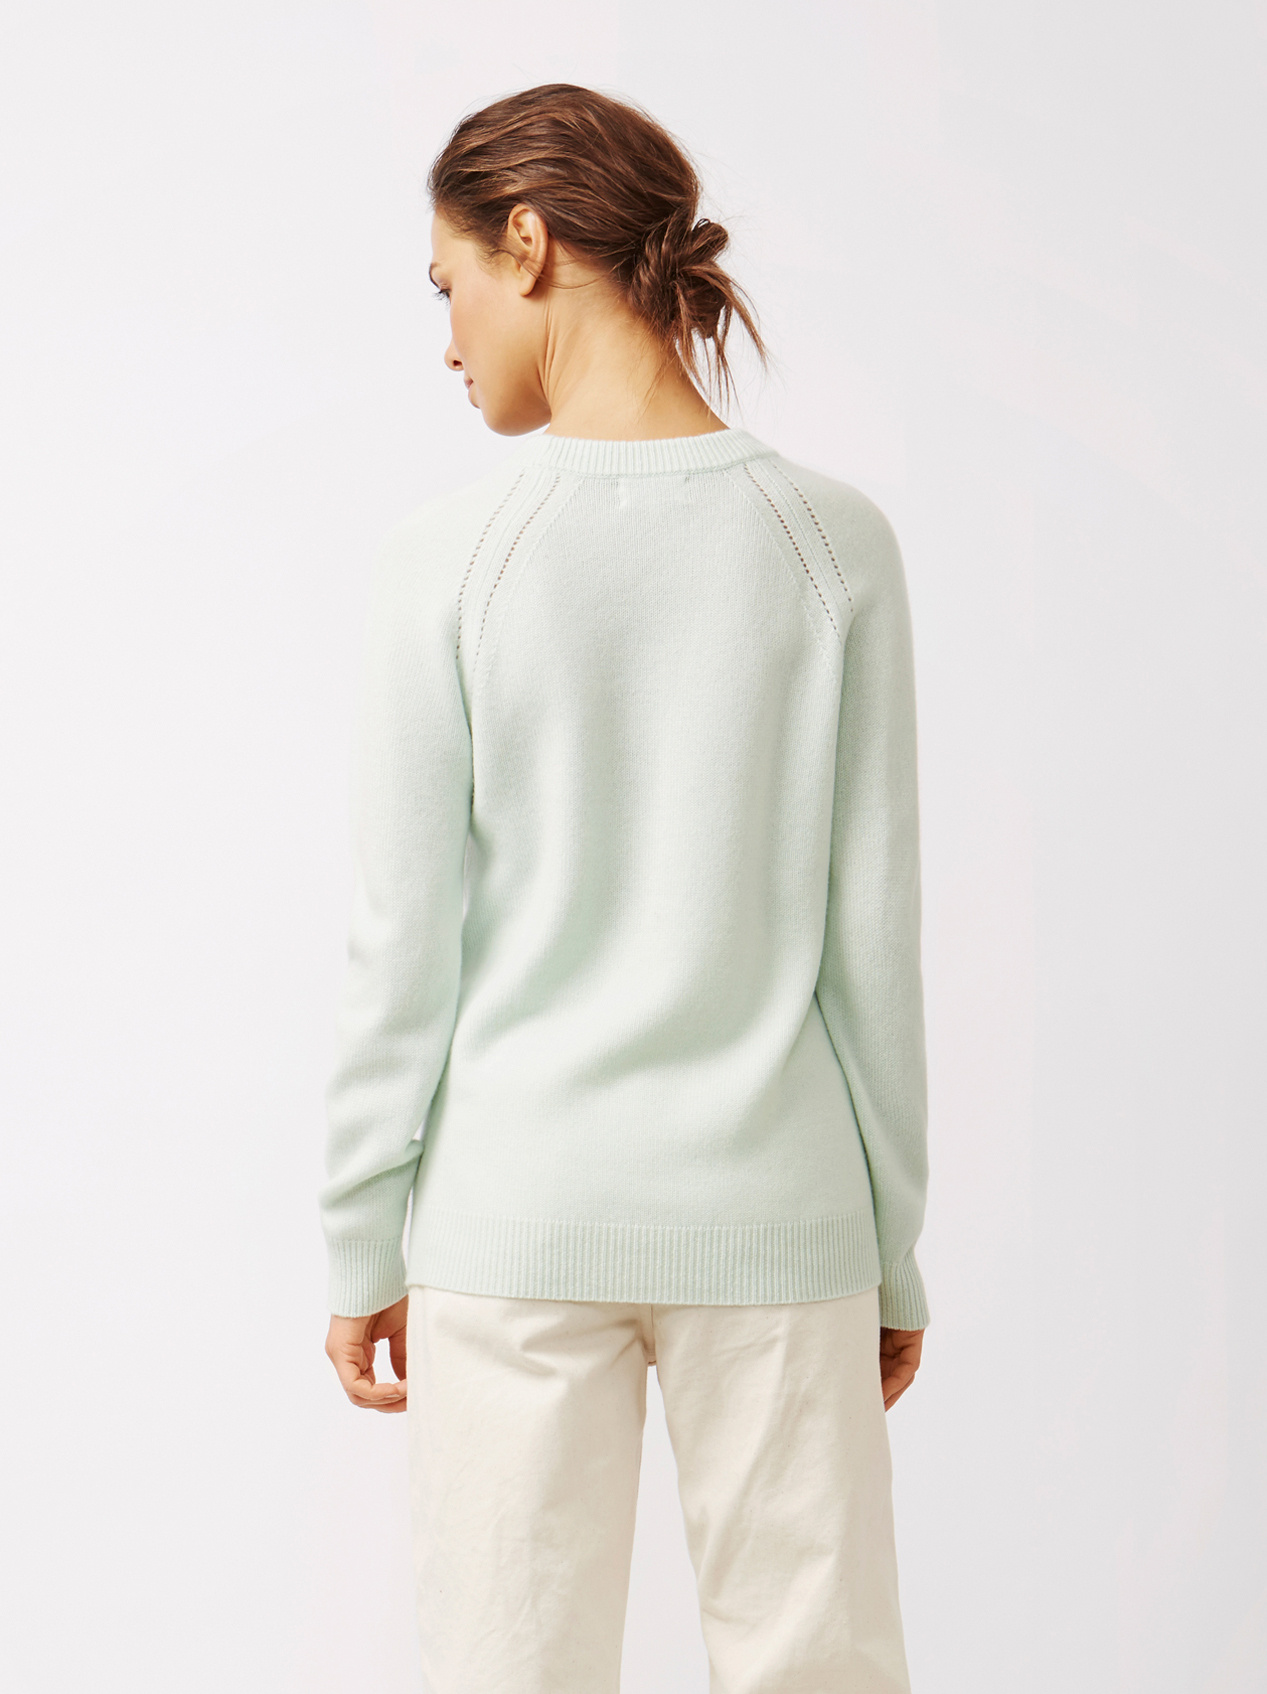 Soft Goat Women's Soft Sweater Sorbet Mint